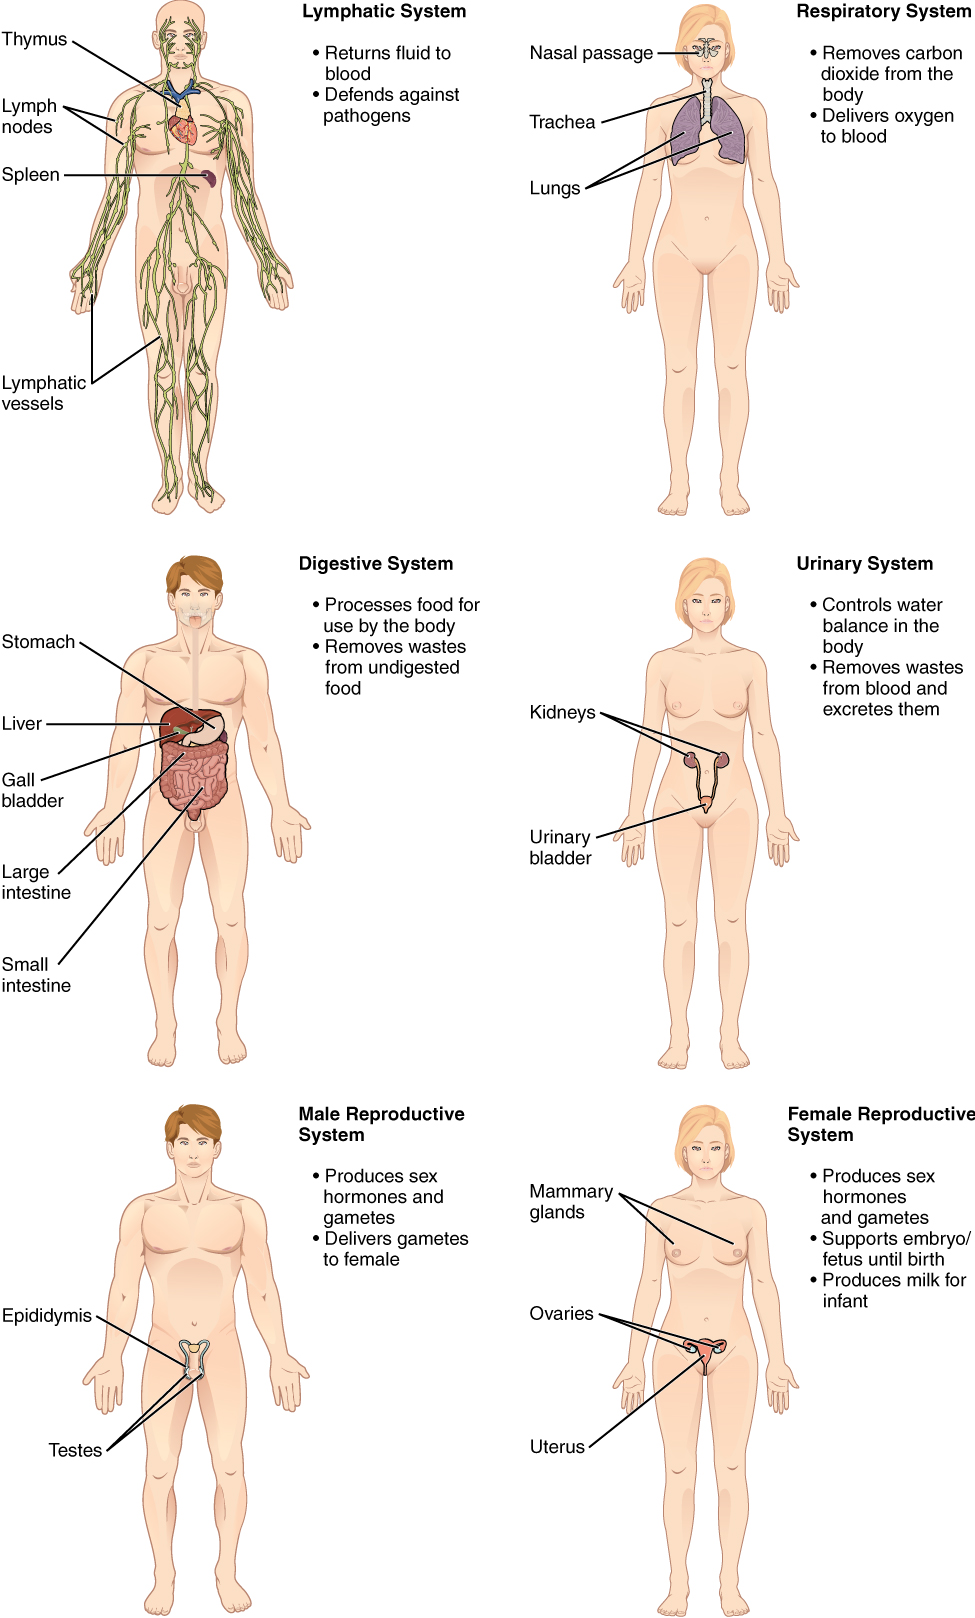 Organs In Thoracic Cavity furthermore Multiple choice quiz 1 moreover 15256432 as well Organs Of The Abdominopelvic Cavity besides Respiratory System. on human body cavities with organs labeled